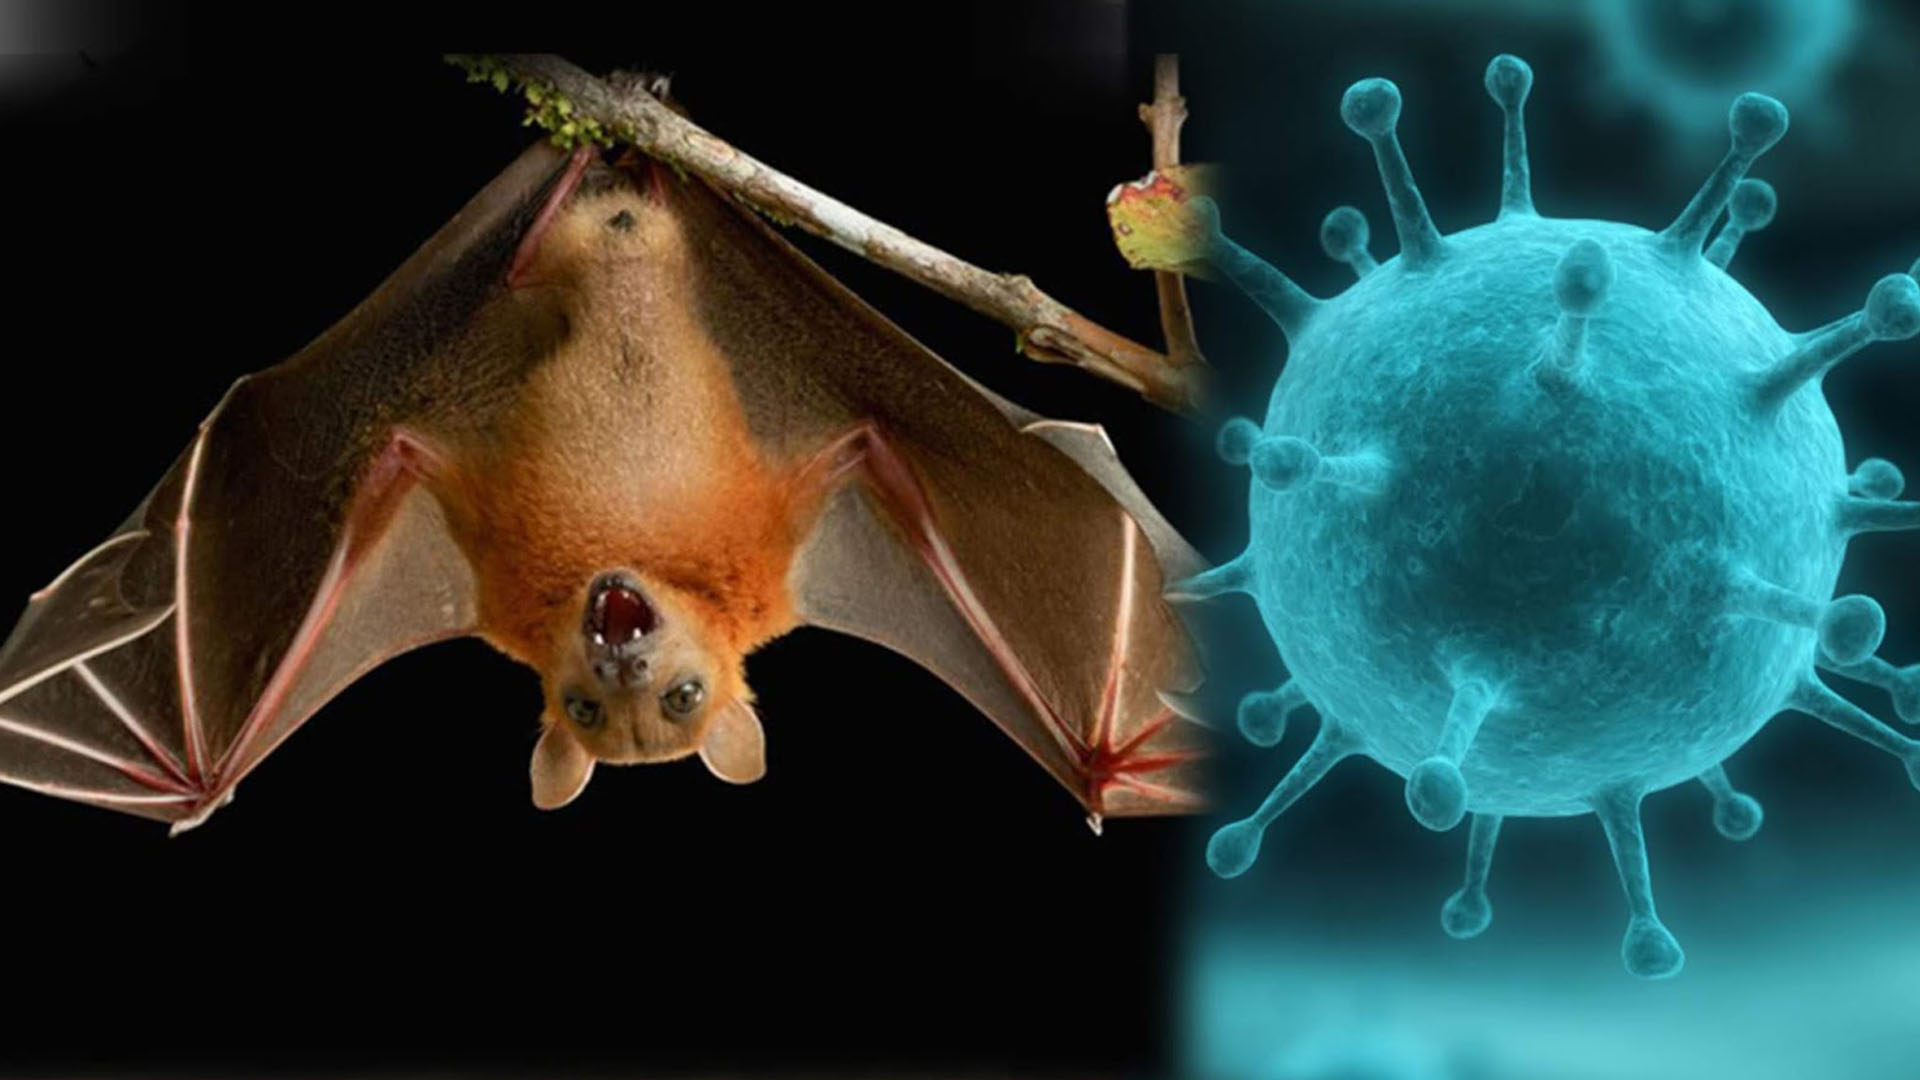 Surge rebrote del MORTAL VIRUS Nipah o VNi, en la India - Enfoque ...